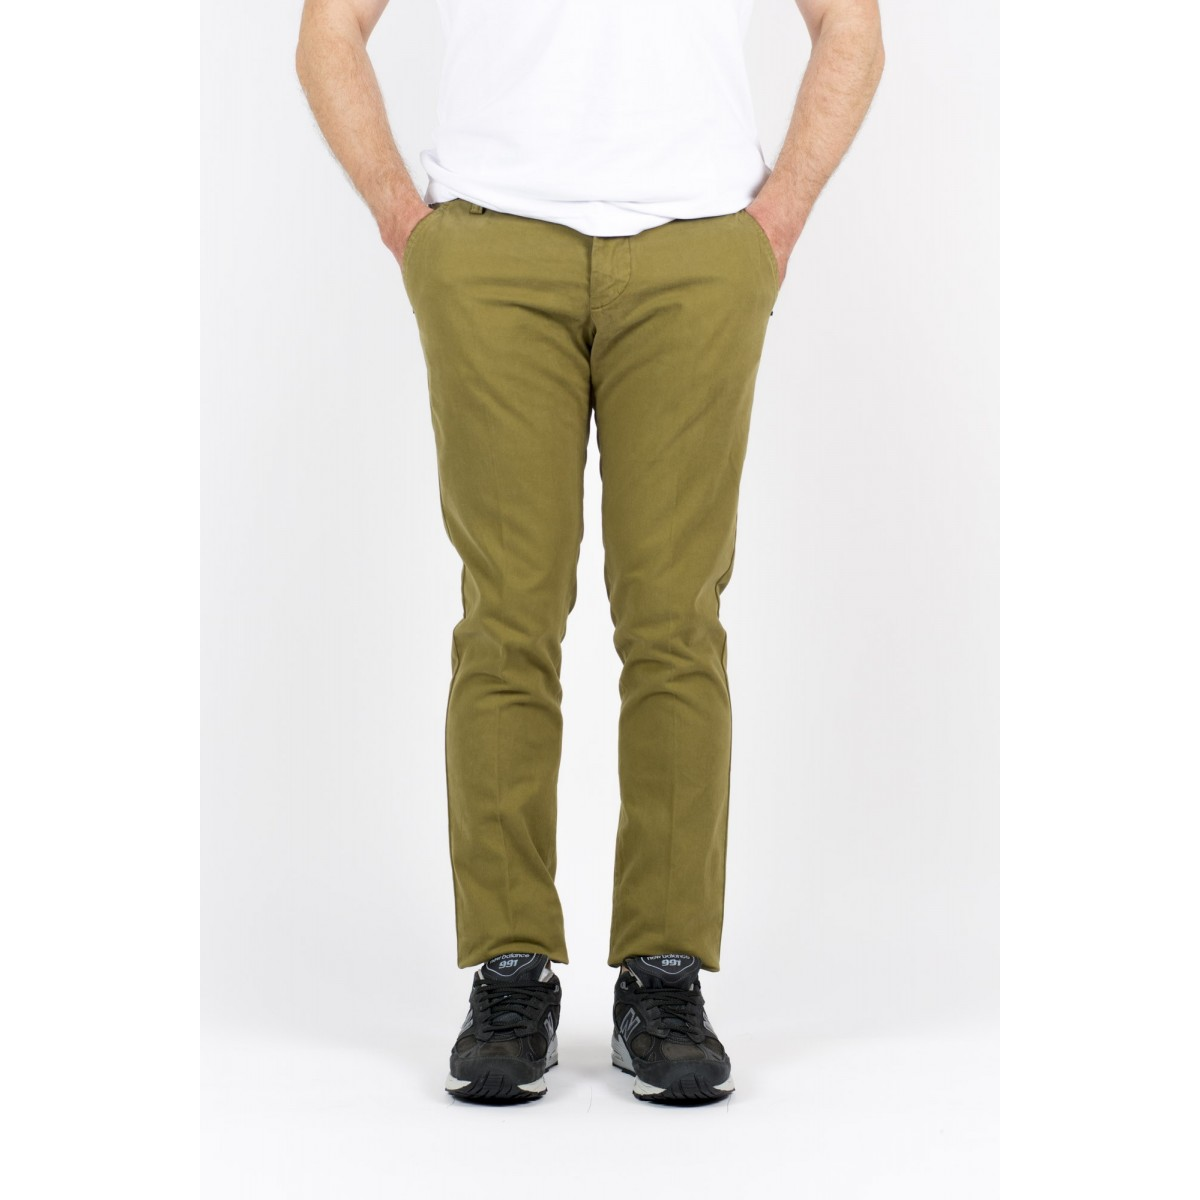 Trousers Entre Amis Man - A15 8201 903 - Oliva